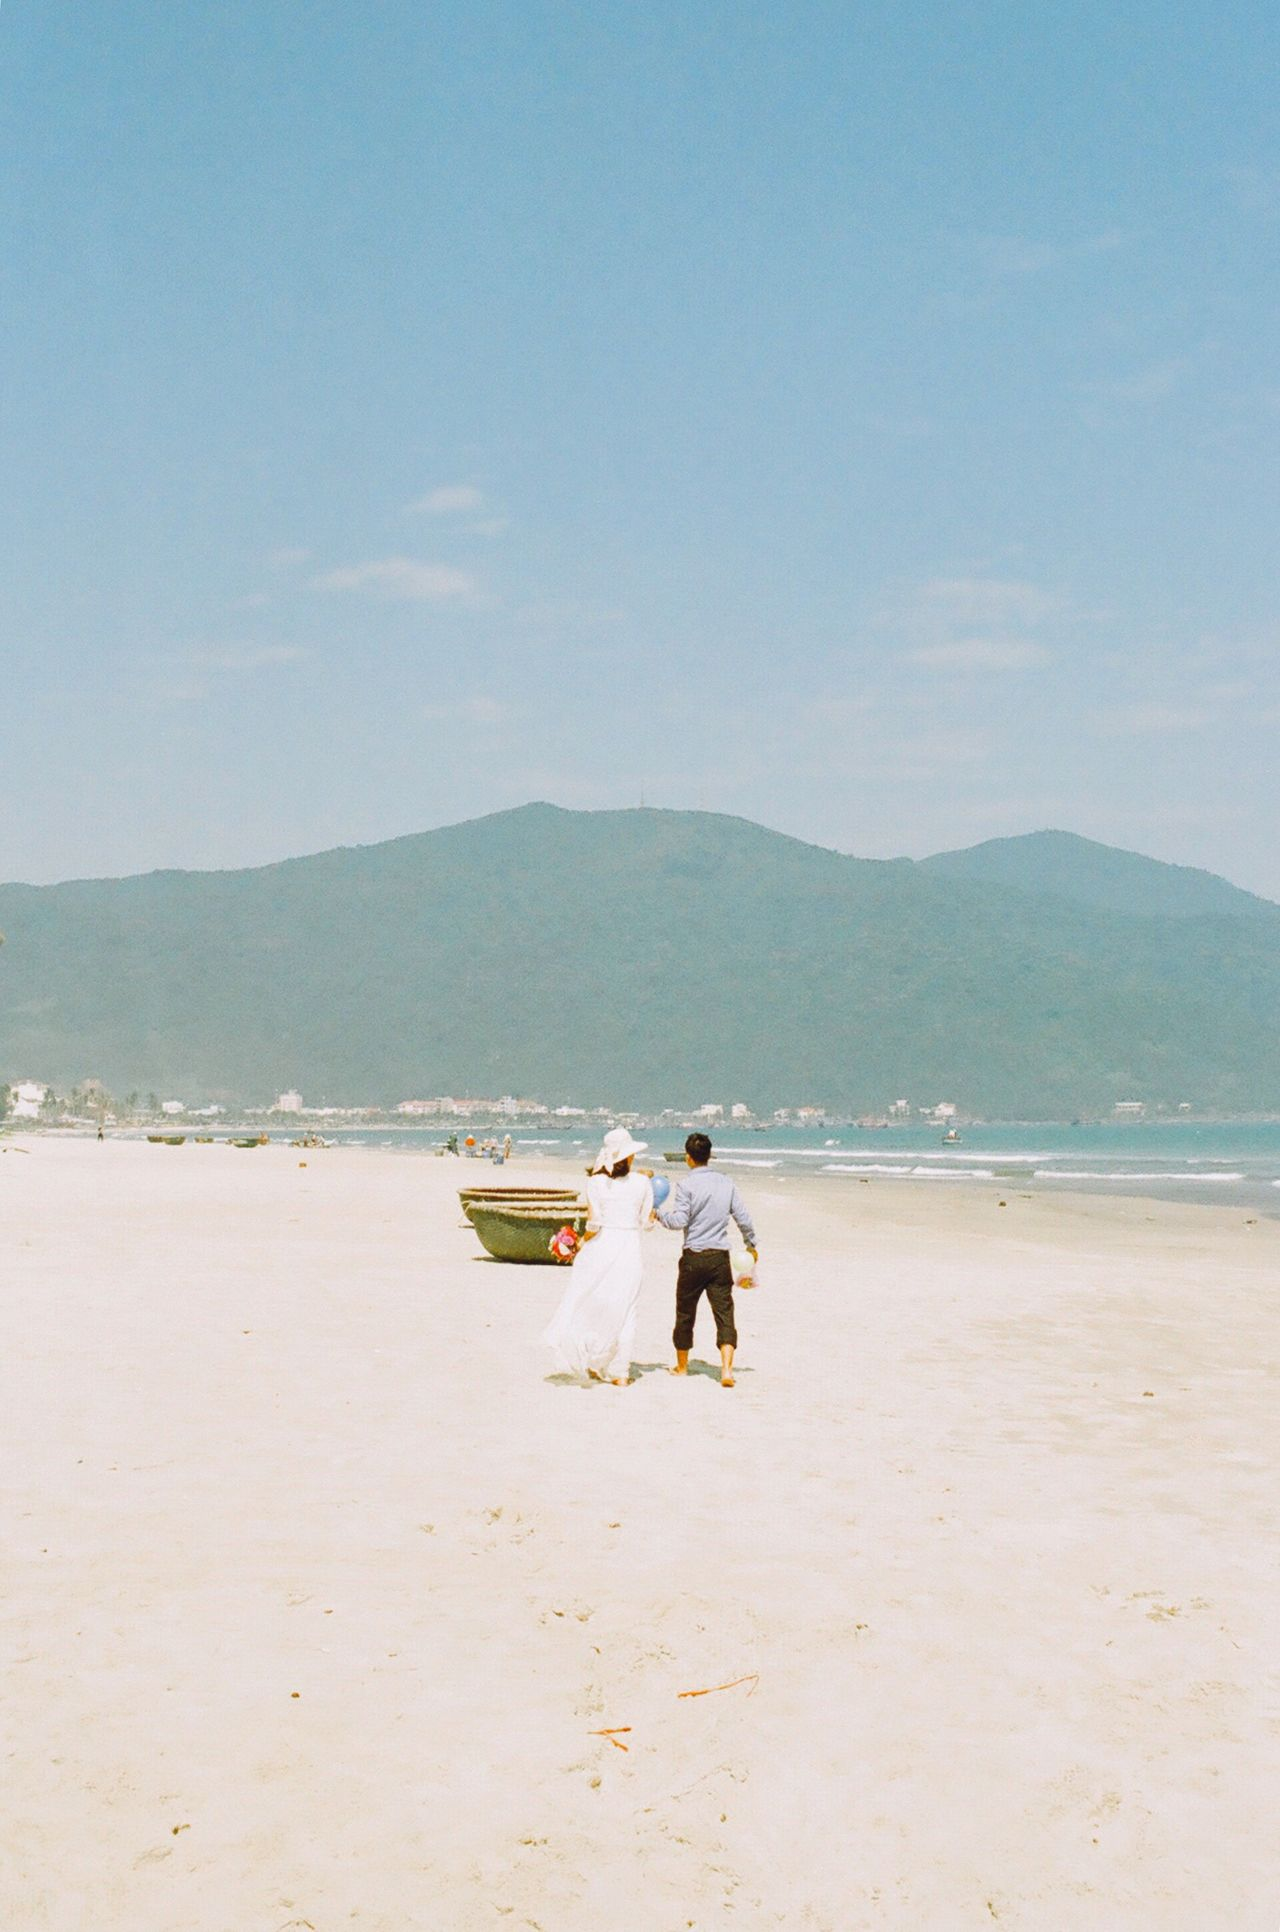 Film Filmisnotdead Analogue Photography Capture The Moment Vietnam Danang Wedding Photography Beach Sea Water Nature Shore Real People Beauty In Nature Sky Outdoors Scenics Sand Mountain Clear Sky Men Day Horizon Over Water